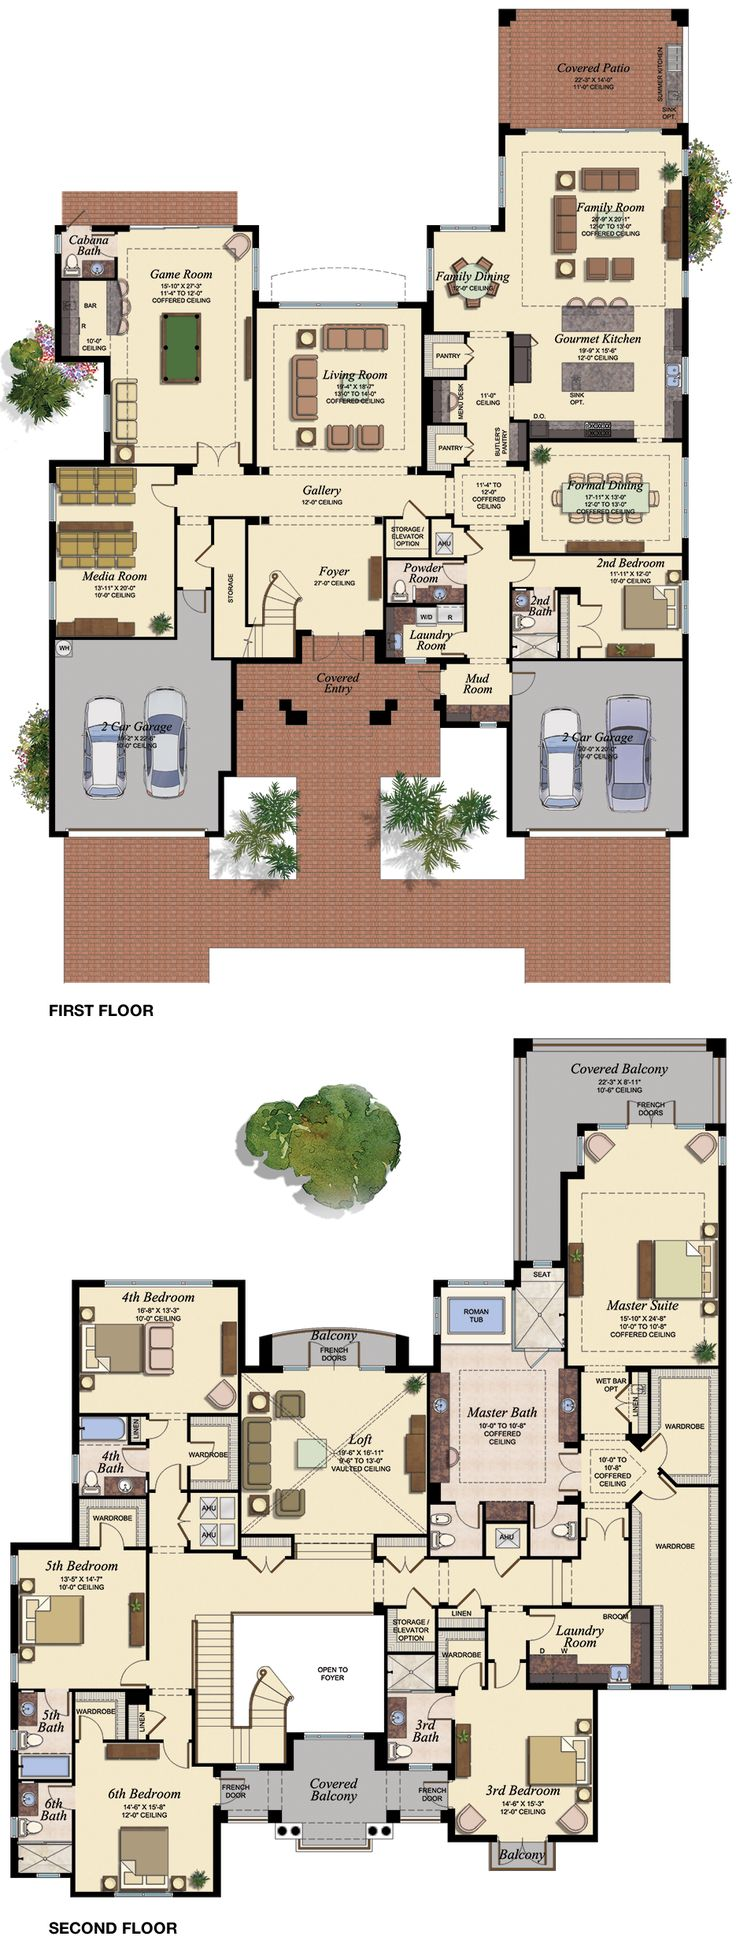 17 best ideas about dream house plans on pinterest for 2 story house layout